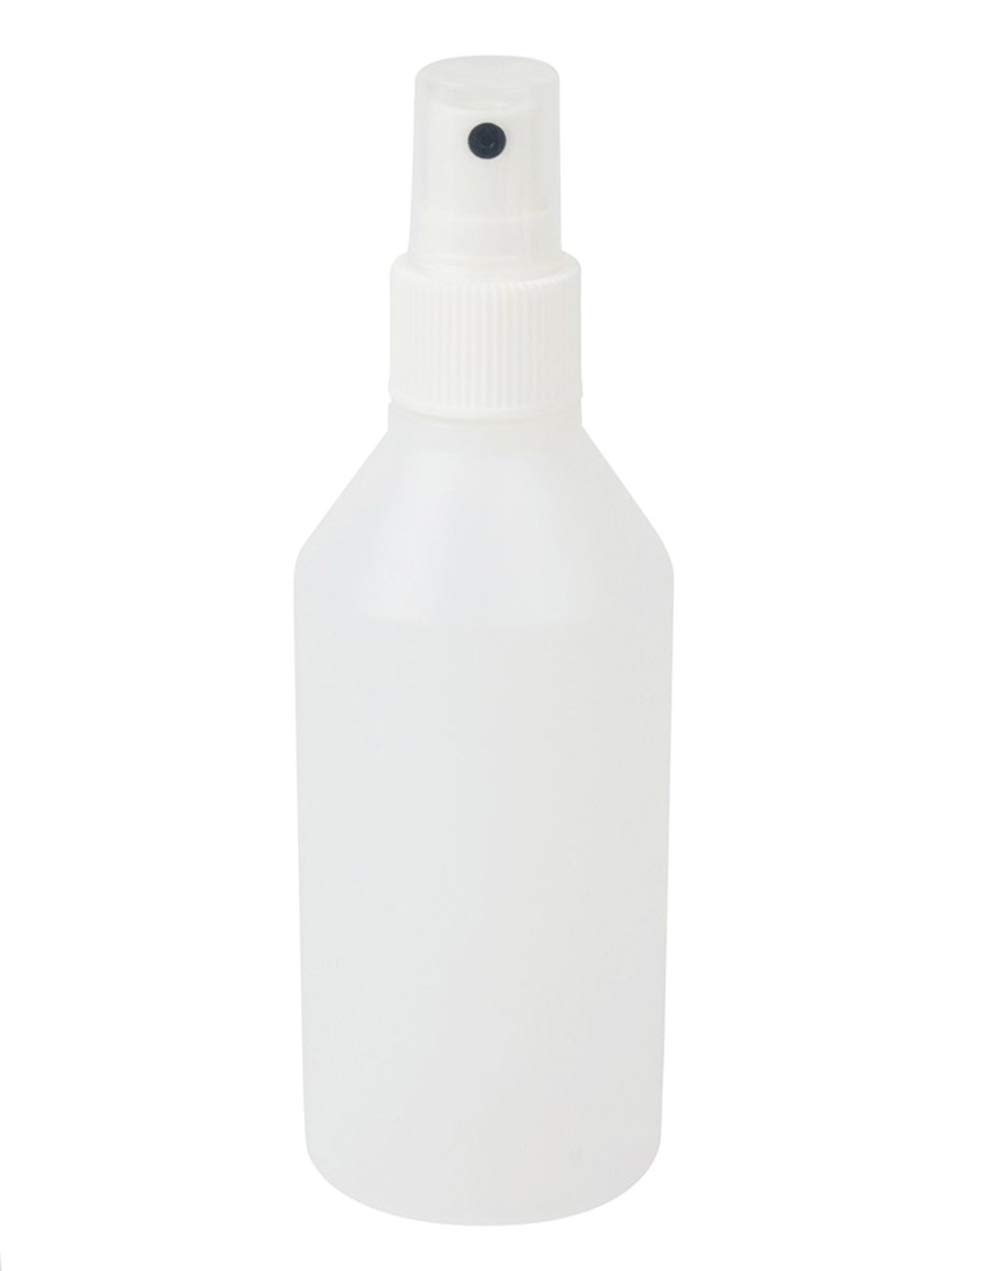 5 x 200mL Natural HDPE PLASTIC BOTTLES w/White ATOMIZER Spray Tops for Liquids/Fragrance/Perfume/Salons/Travel/Aftershave Lucemill Packaging